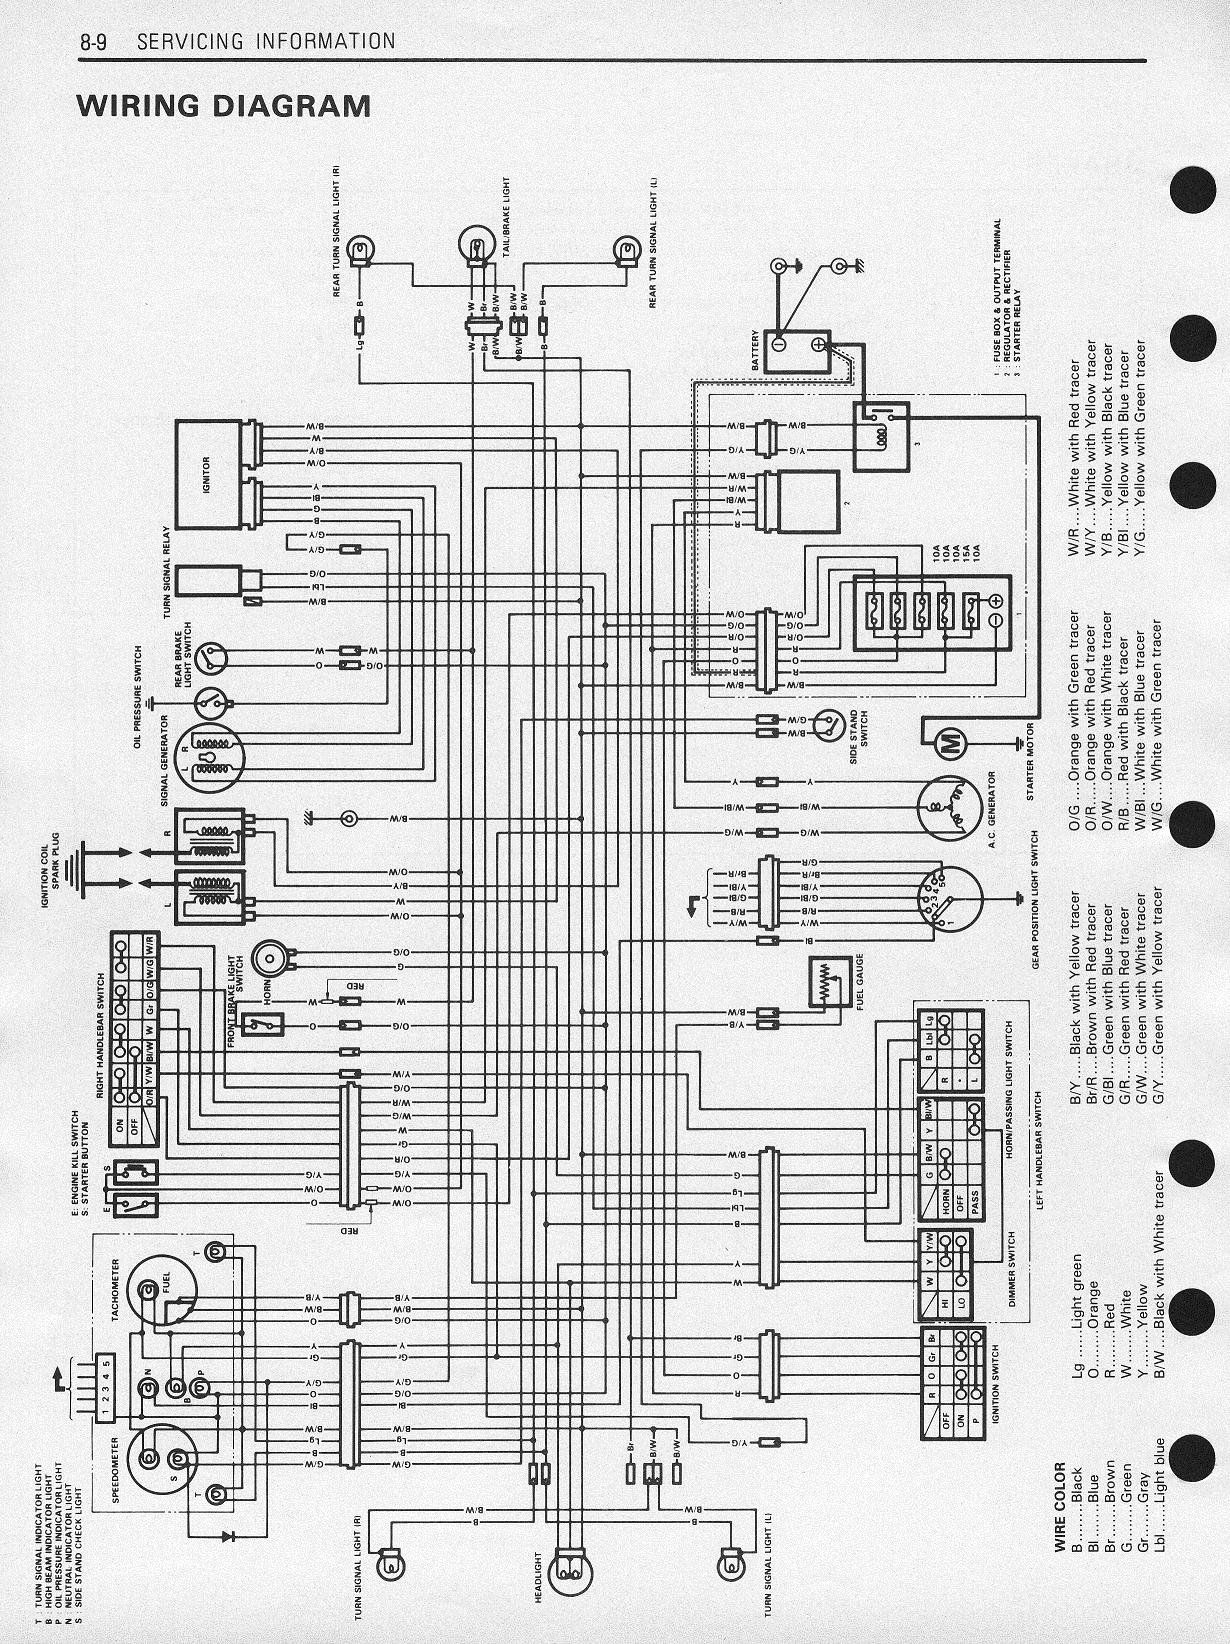 Suzuki Gr 650 Wiring Diagram Auto Electrical Boeing 727 Related With